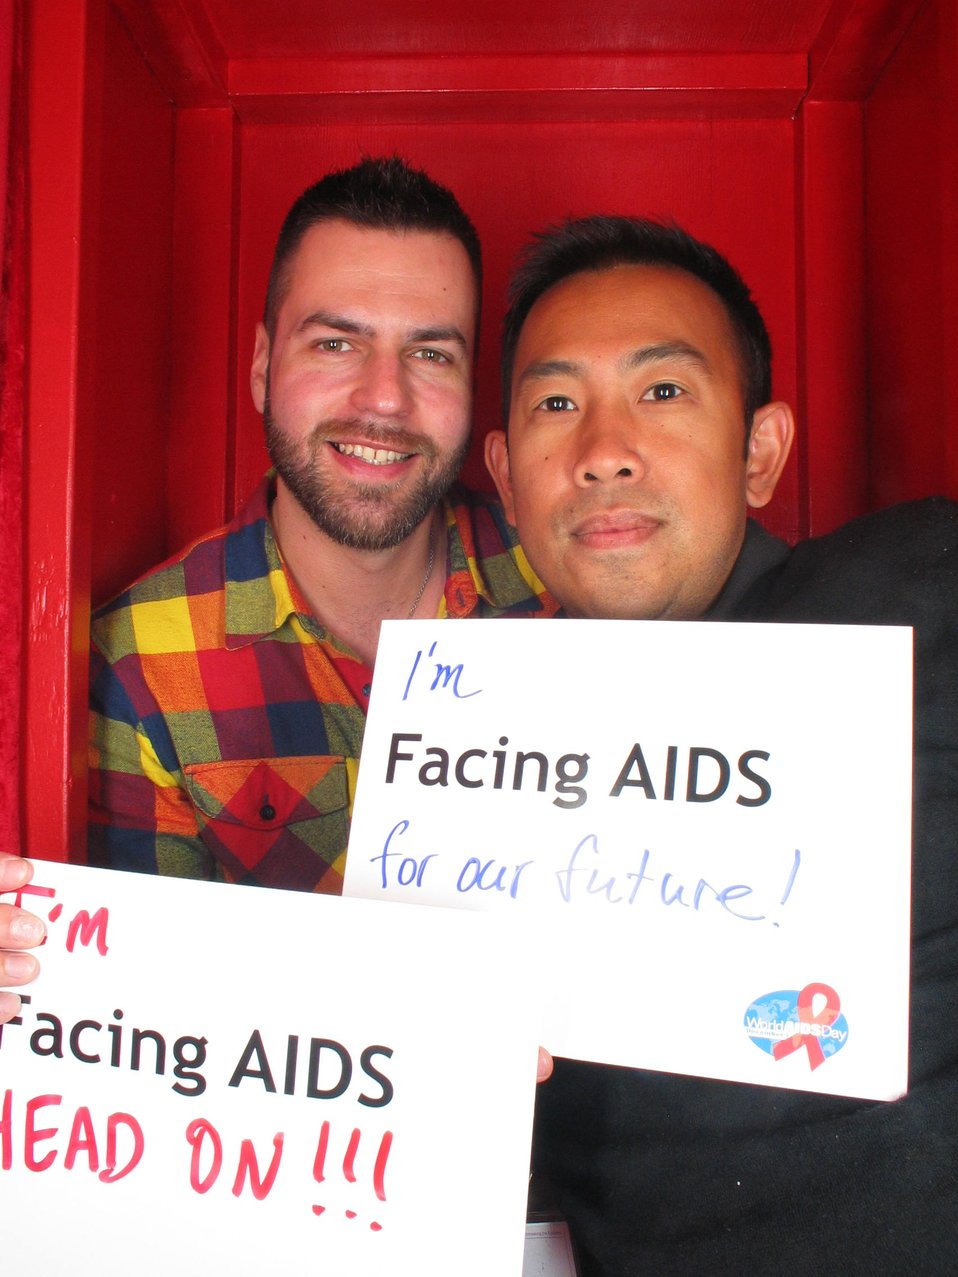 I'm Facing AIDS for our future! I'm Facing AIDS head on!!!